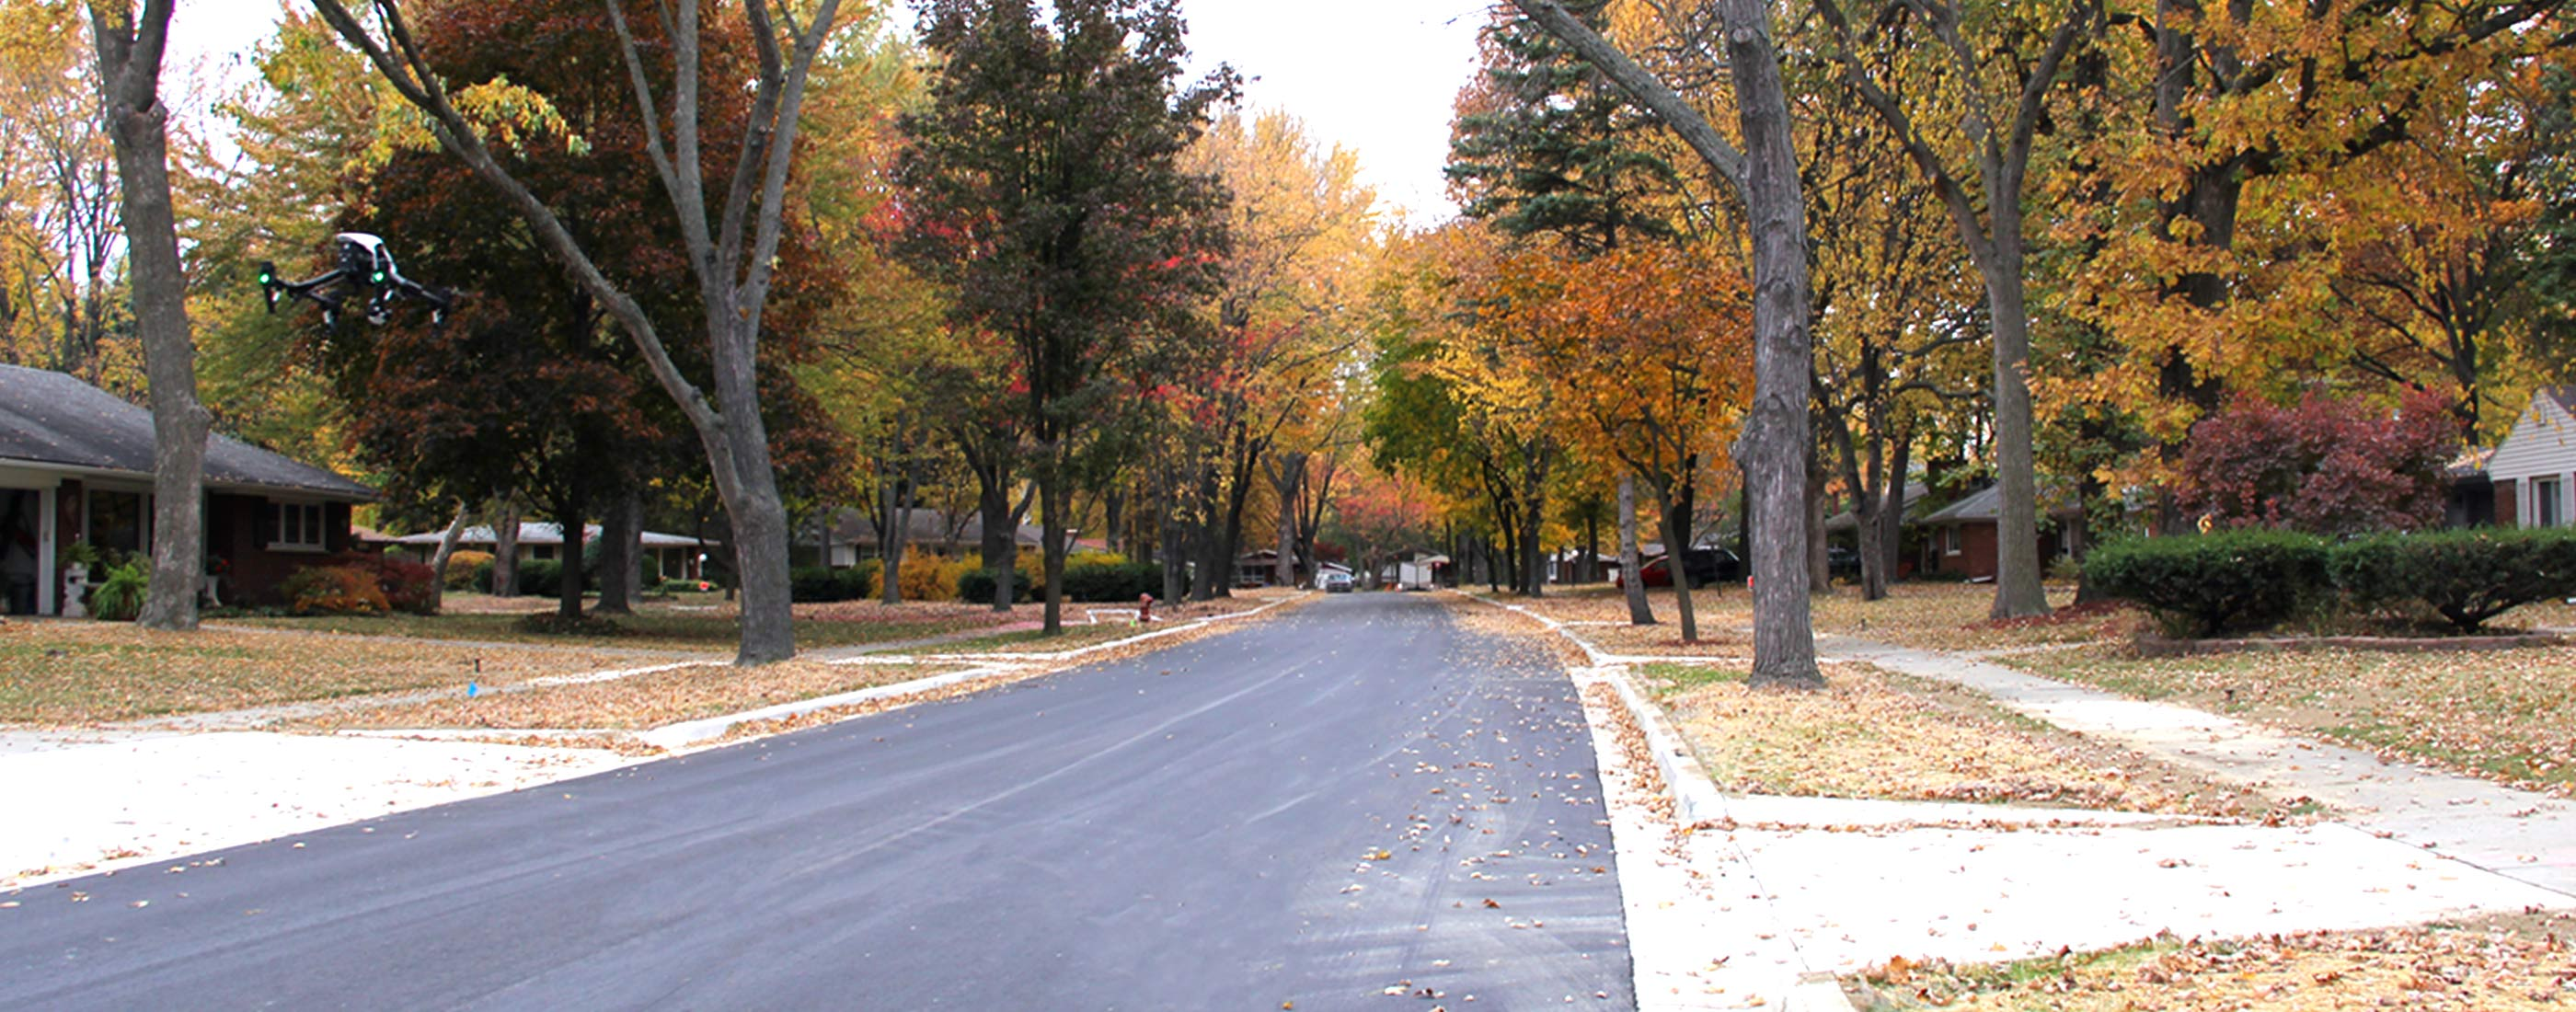 Southfield, MI worked with OHM Advisors to update water mains and corresponding pavement upgrades within the Evergreen Trail Subdivision.